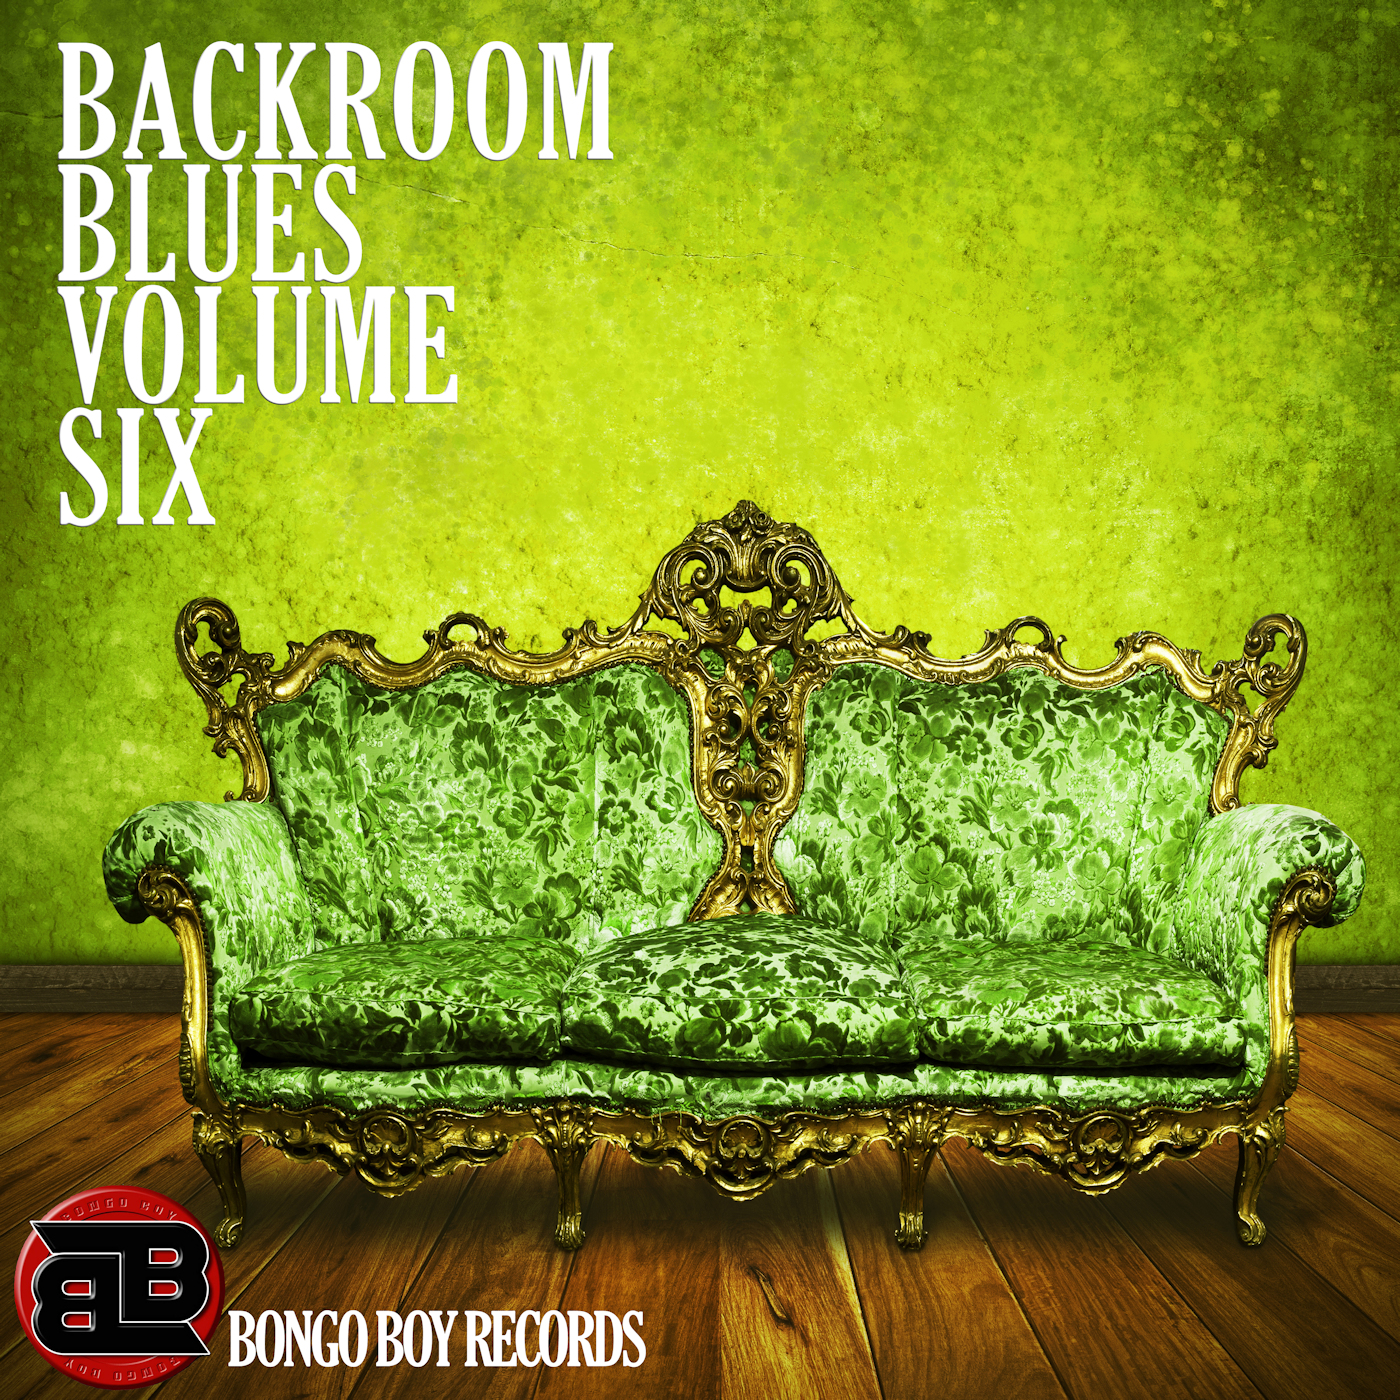 Backroom Blues Volume Six